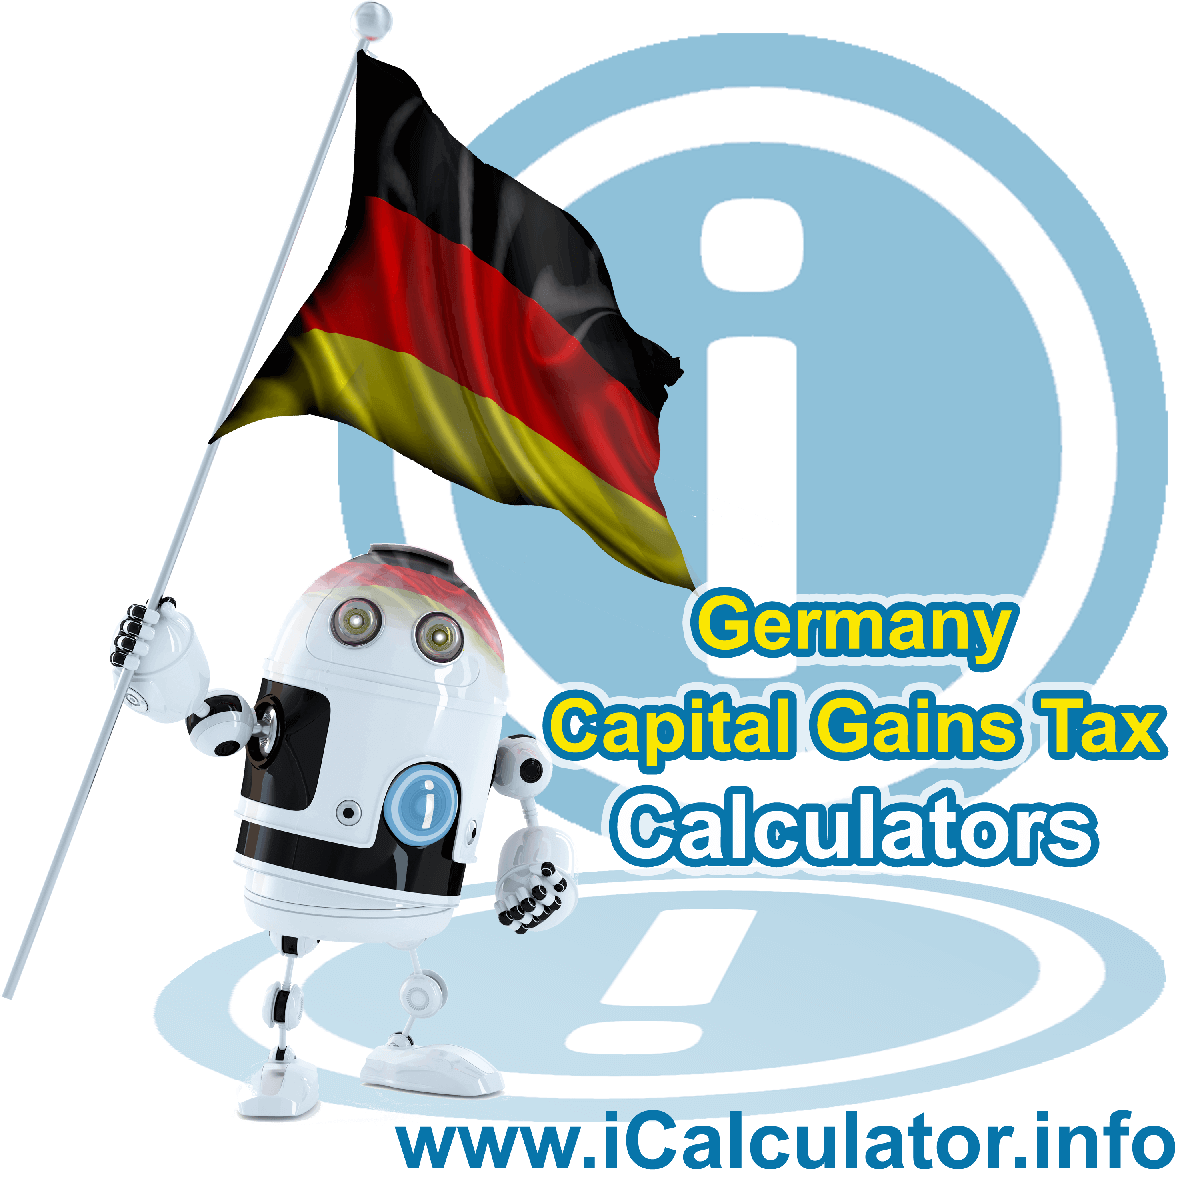 Germany Capital Gains Tax Calculator. This image shows the Germany flag and information relating to the capital gains tax rate formula used for calculating Capital Gains Tax in Germany using the Germany Capital Gains Tax Calculator in 2020